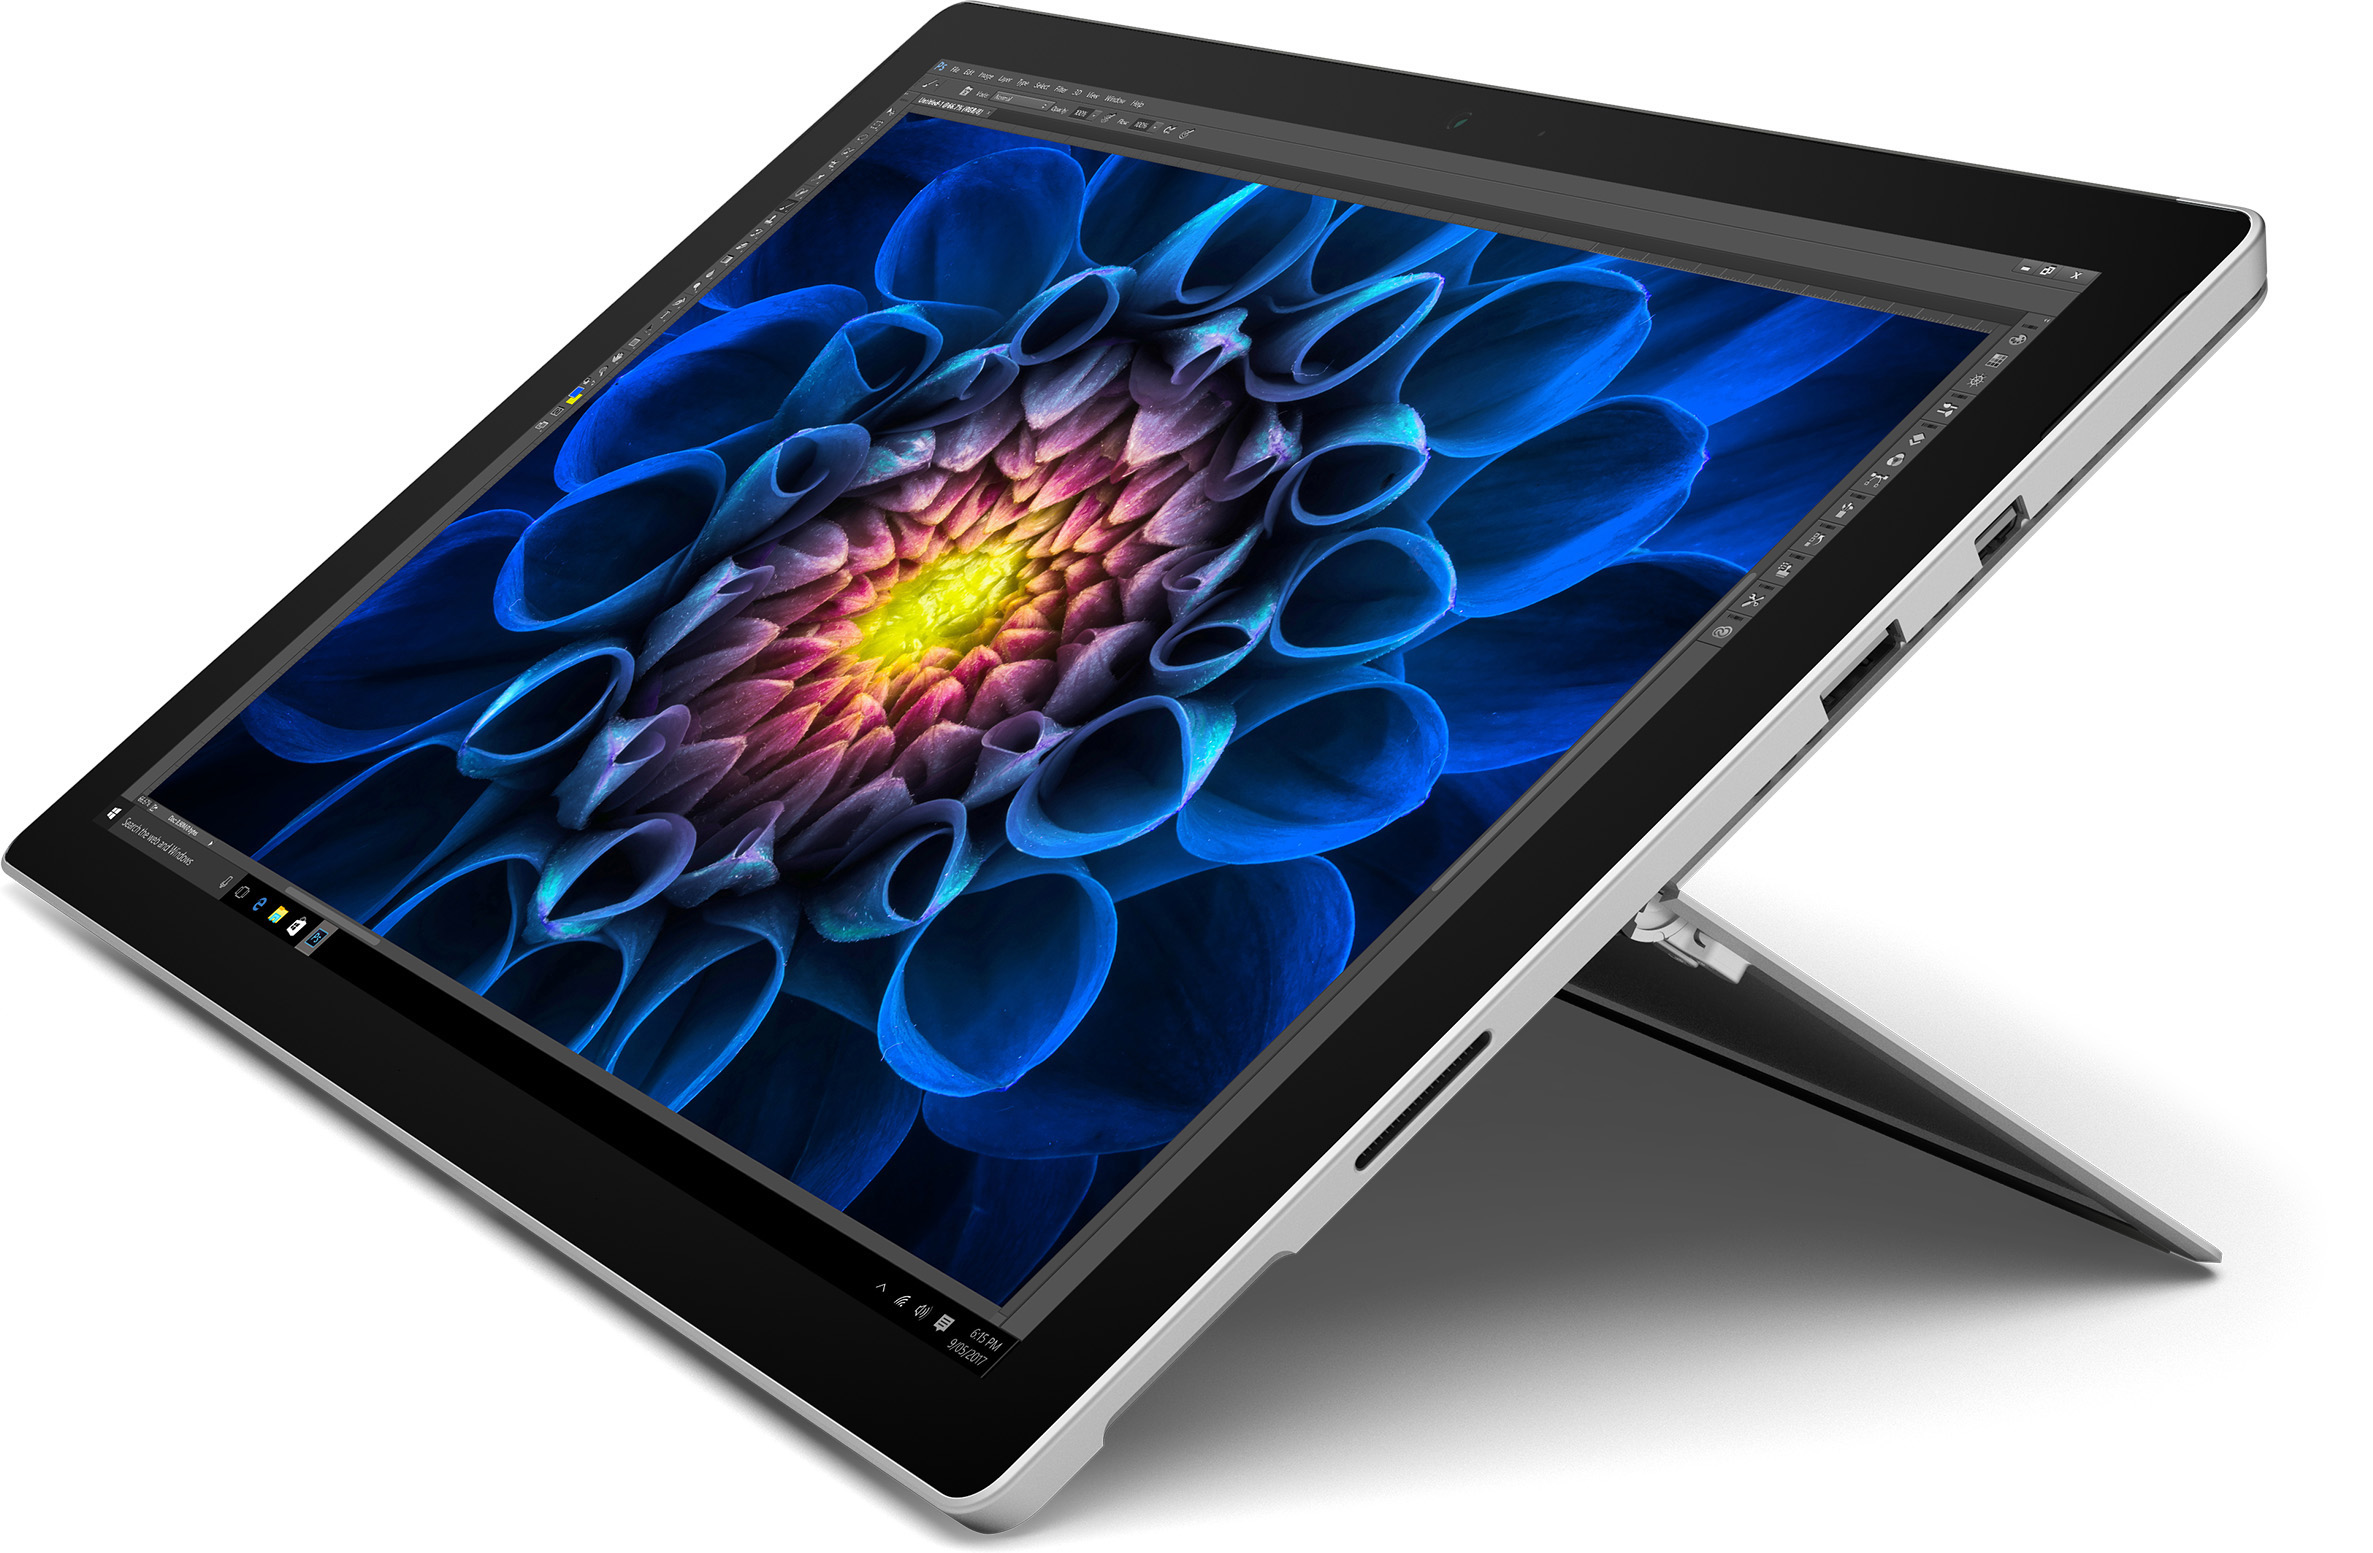 save-100-with-free-shipping-on-surface-pro-3-tablet-with-promo-code